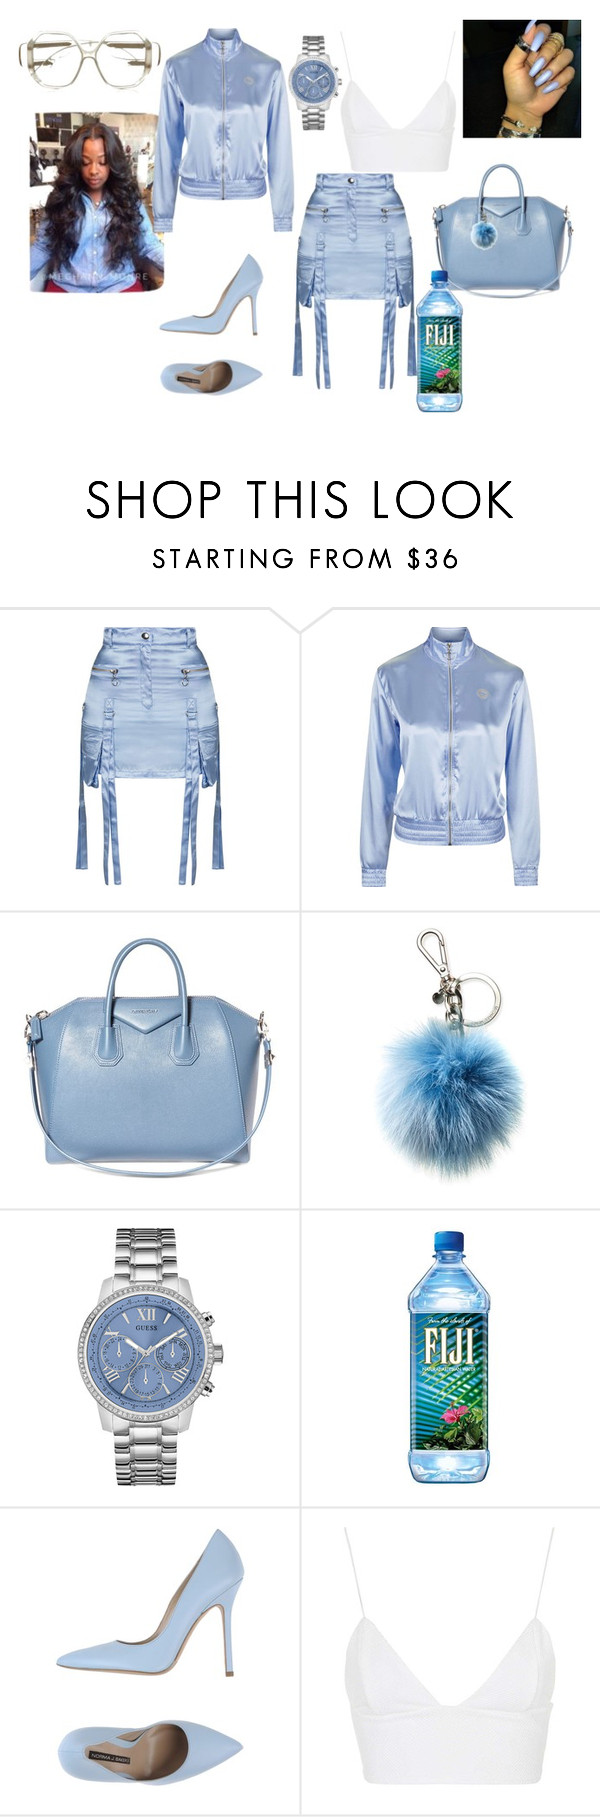 """""""Untitled #452"""" by uniquee28 on Polyvore featuring Topshop, Givenchy, Michael Kors, GUESS, Norma J.Baker, Rare London and Balenciaga"""